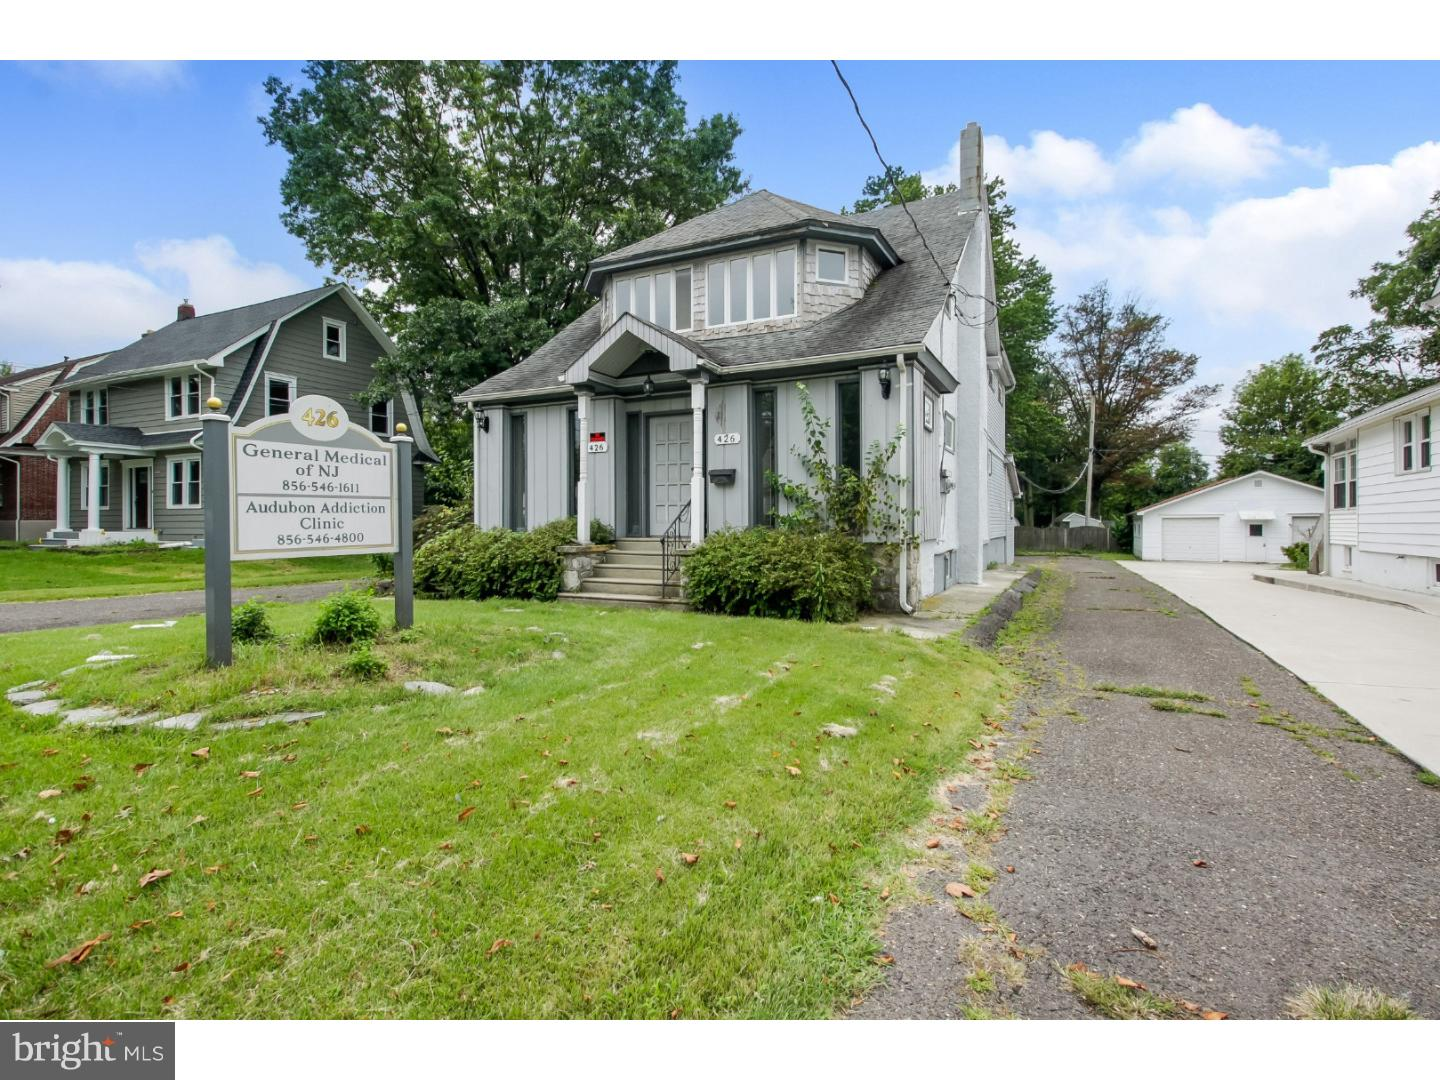 Property for Sale at 426 S WHITE HORSE PIKE Audubon, New Jersey 08106 United States